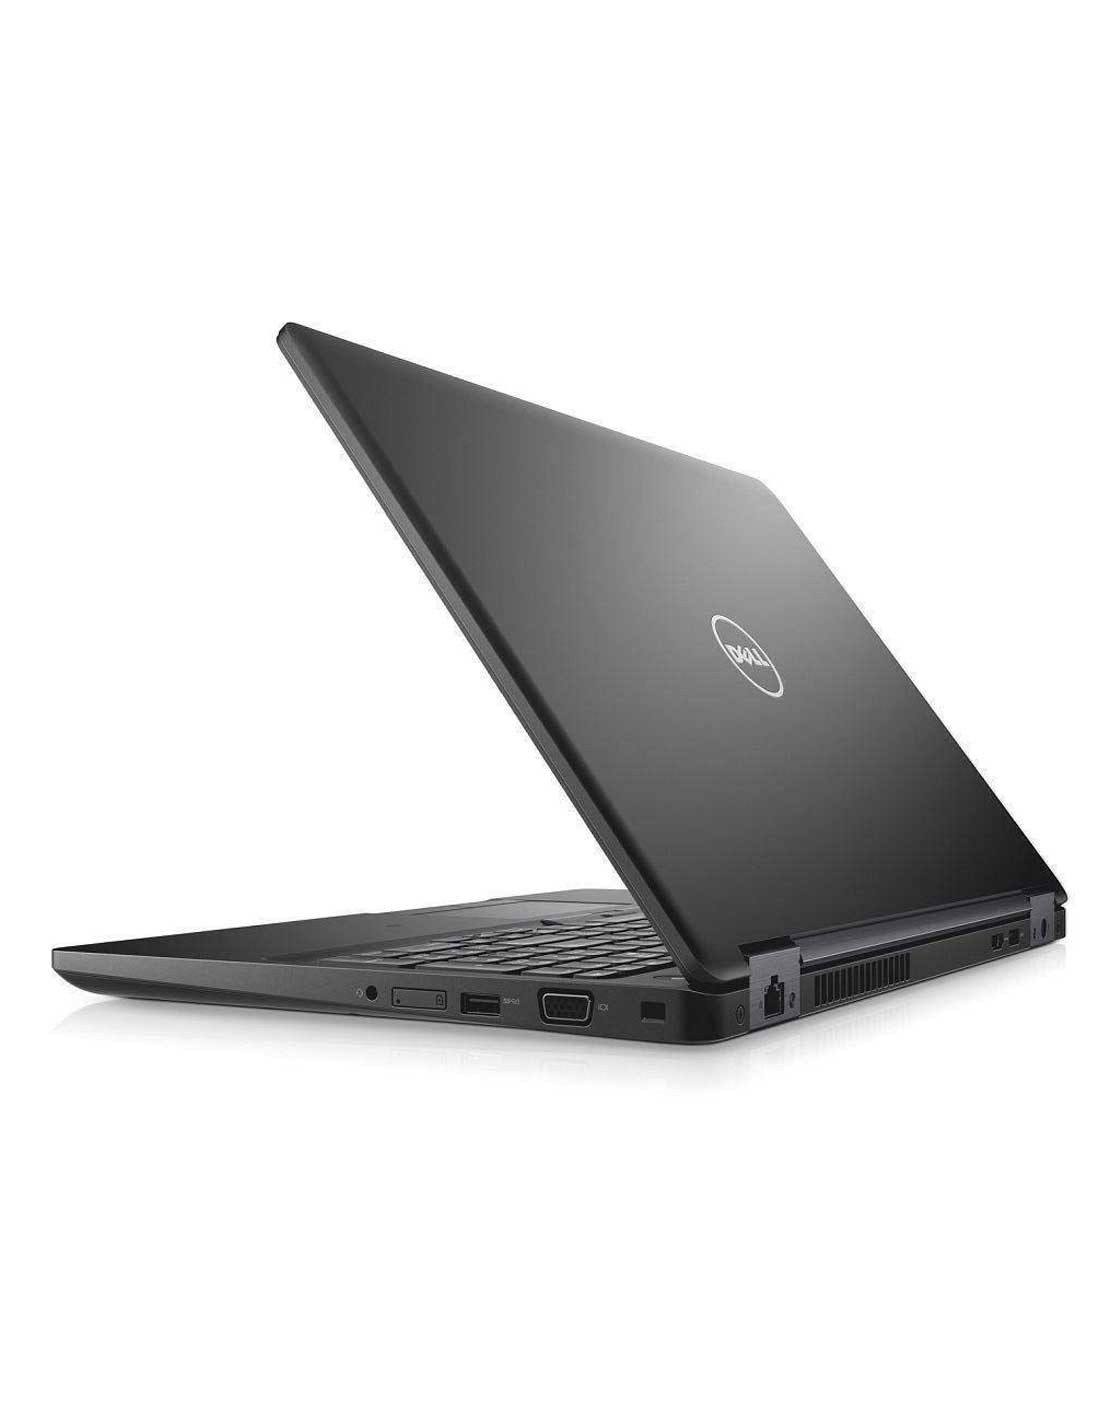 Dell Latitude 5280 Laptop images and photos in Dubai computer store